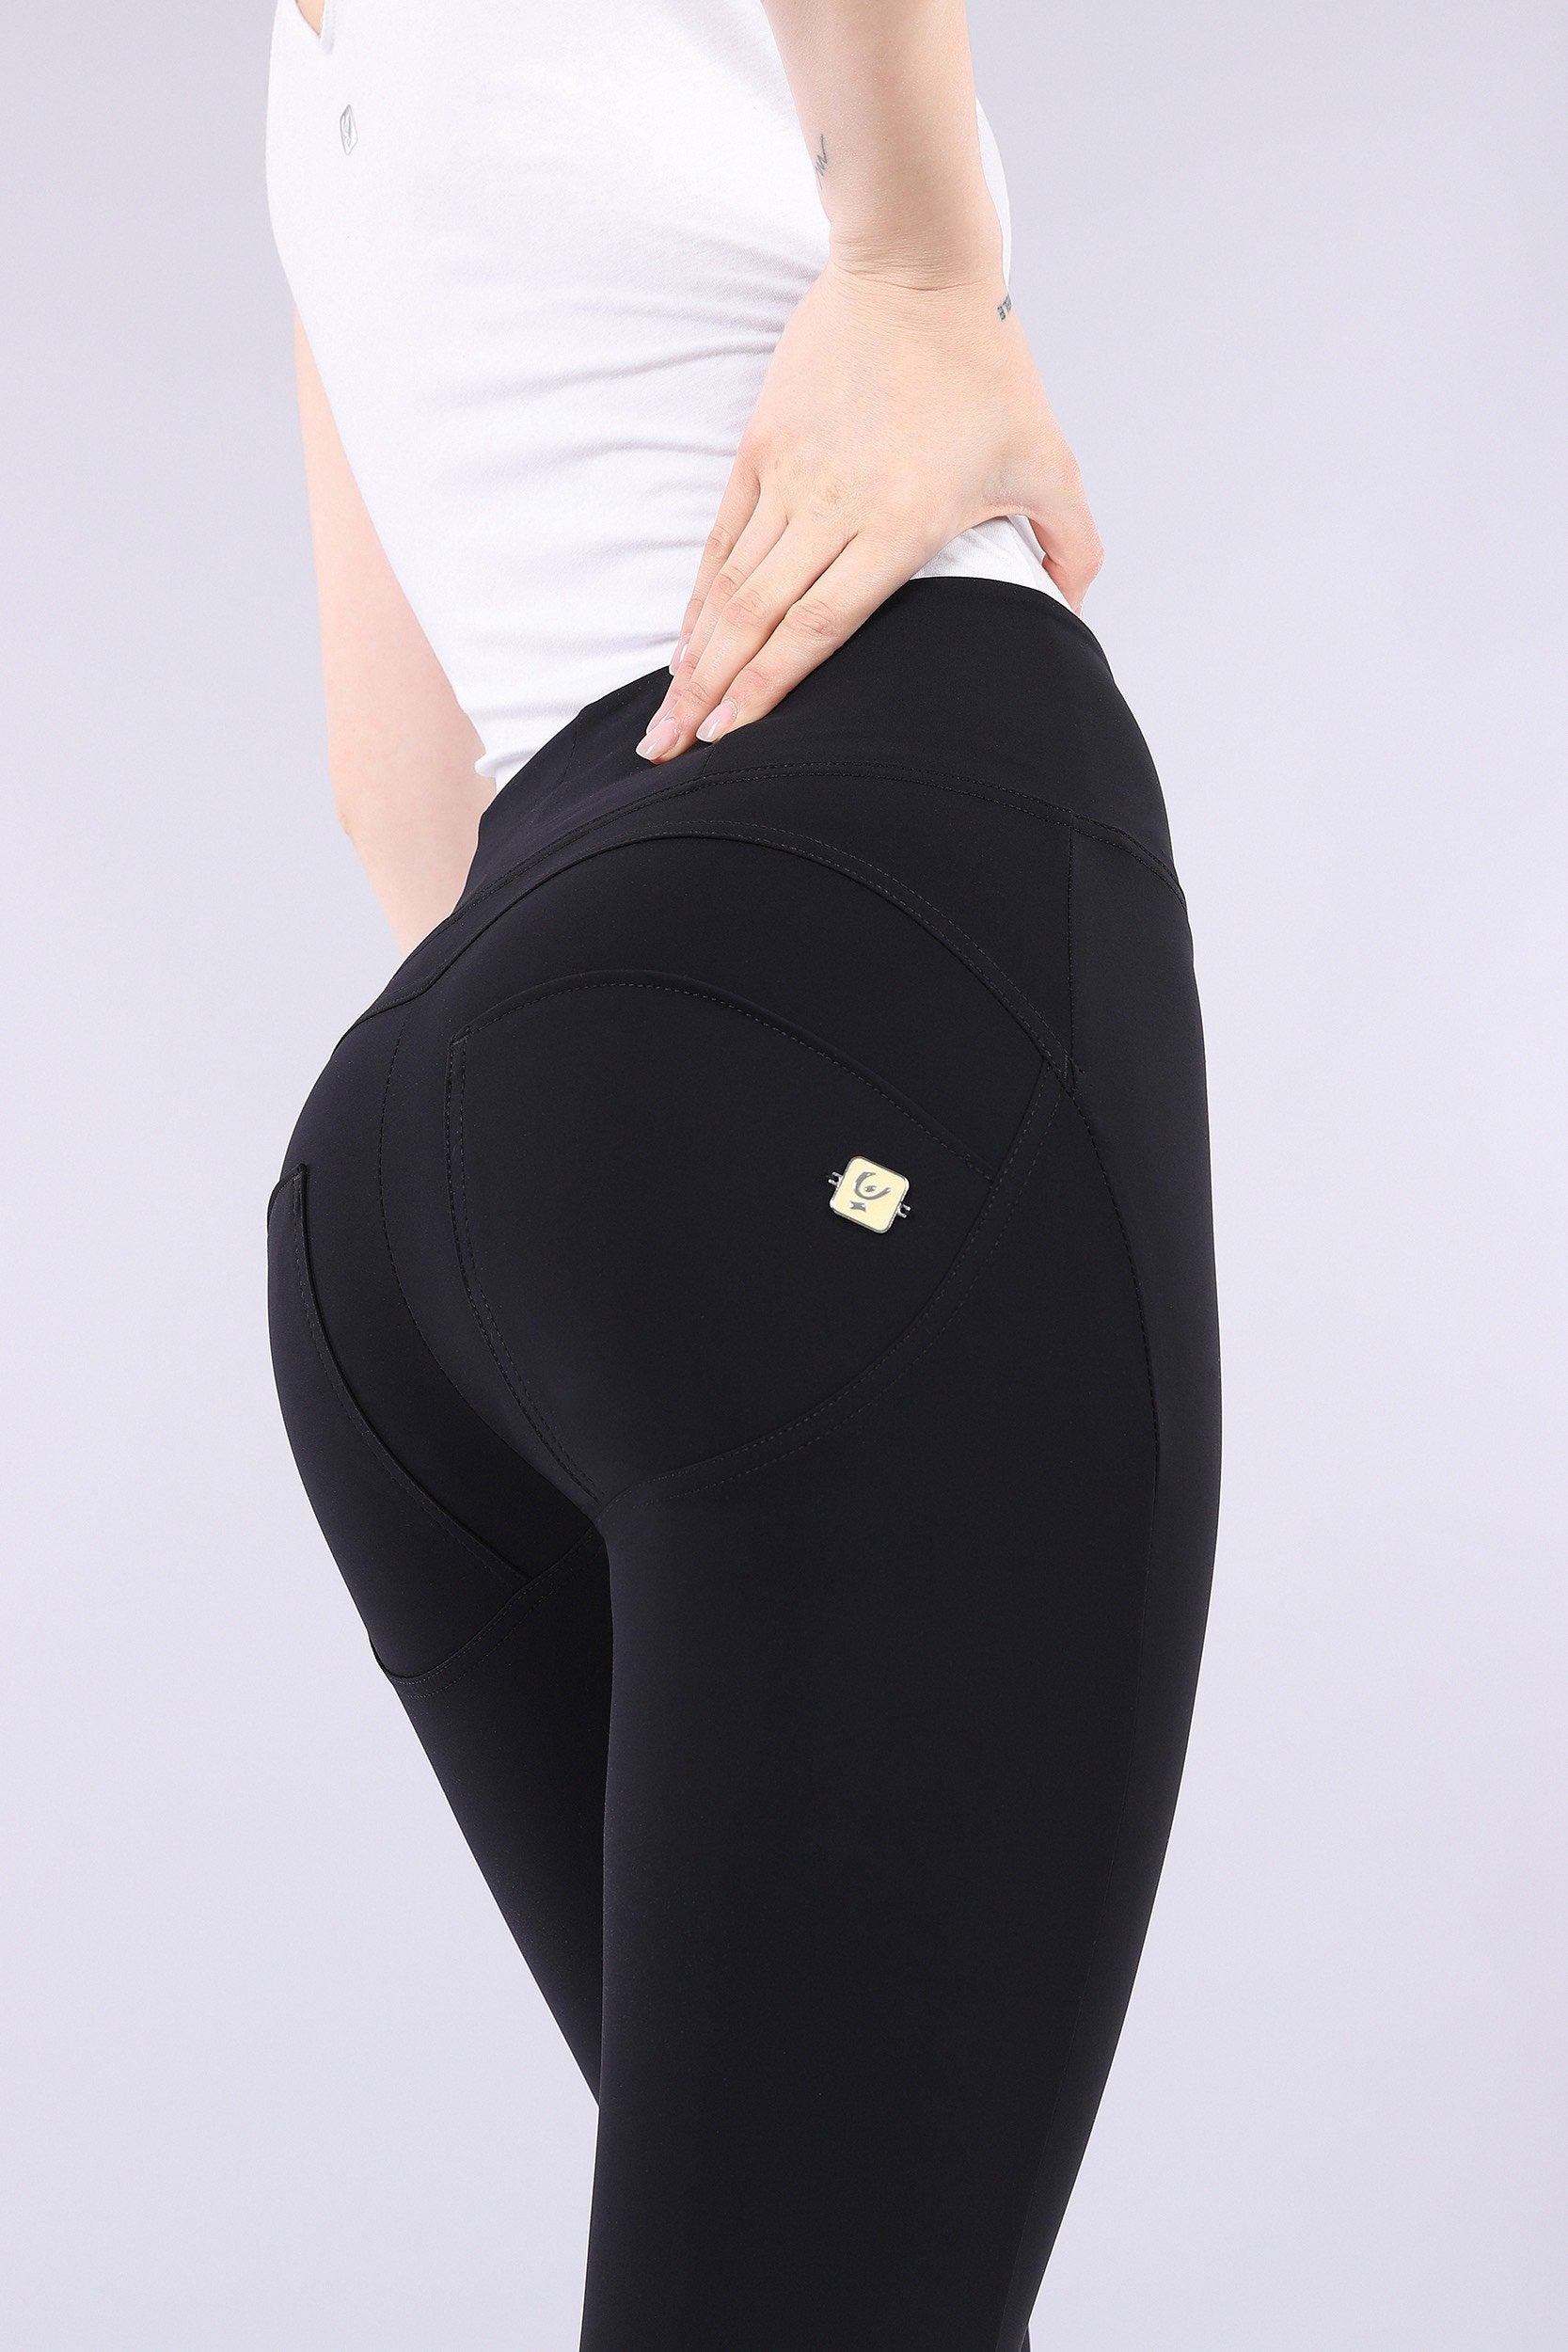 Beauty Pro High Waist Black Freddy